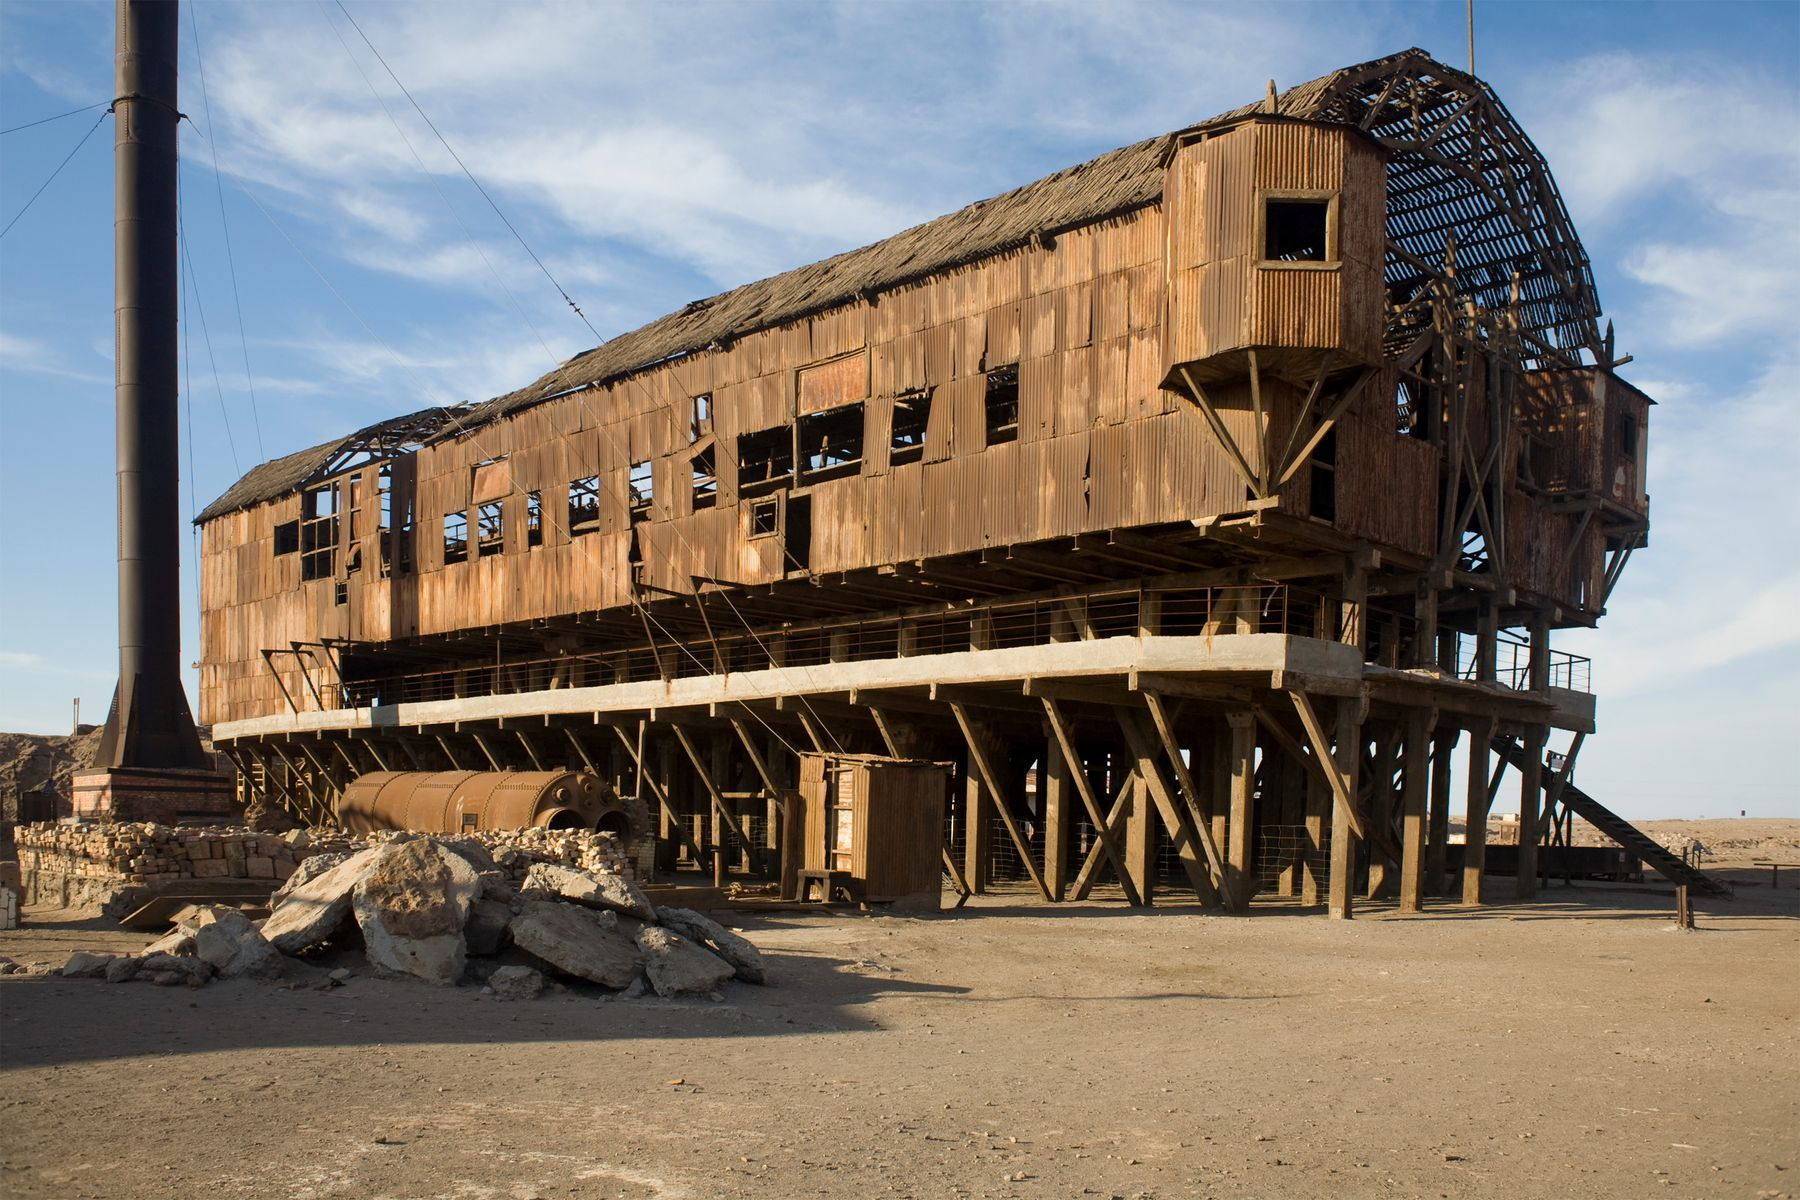 A rusting corrugated iron structure is one of the few signs that Humberstone once existed.